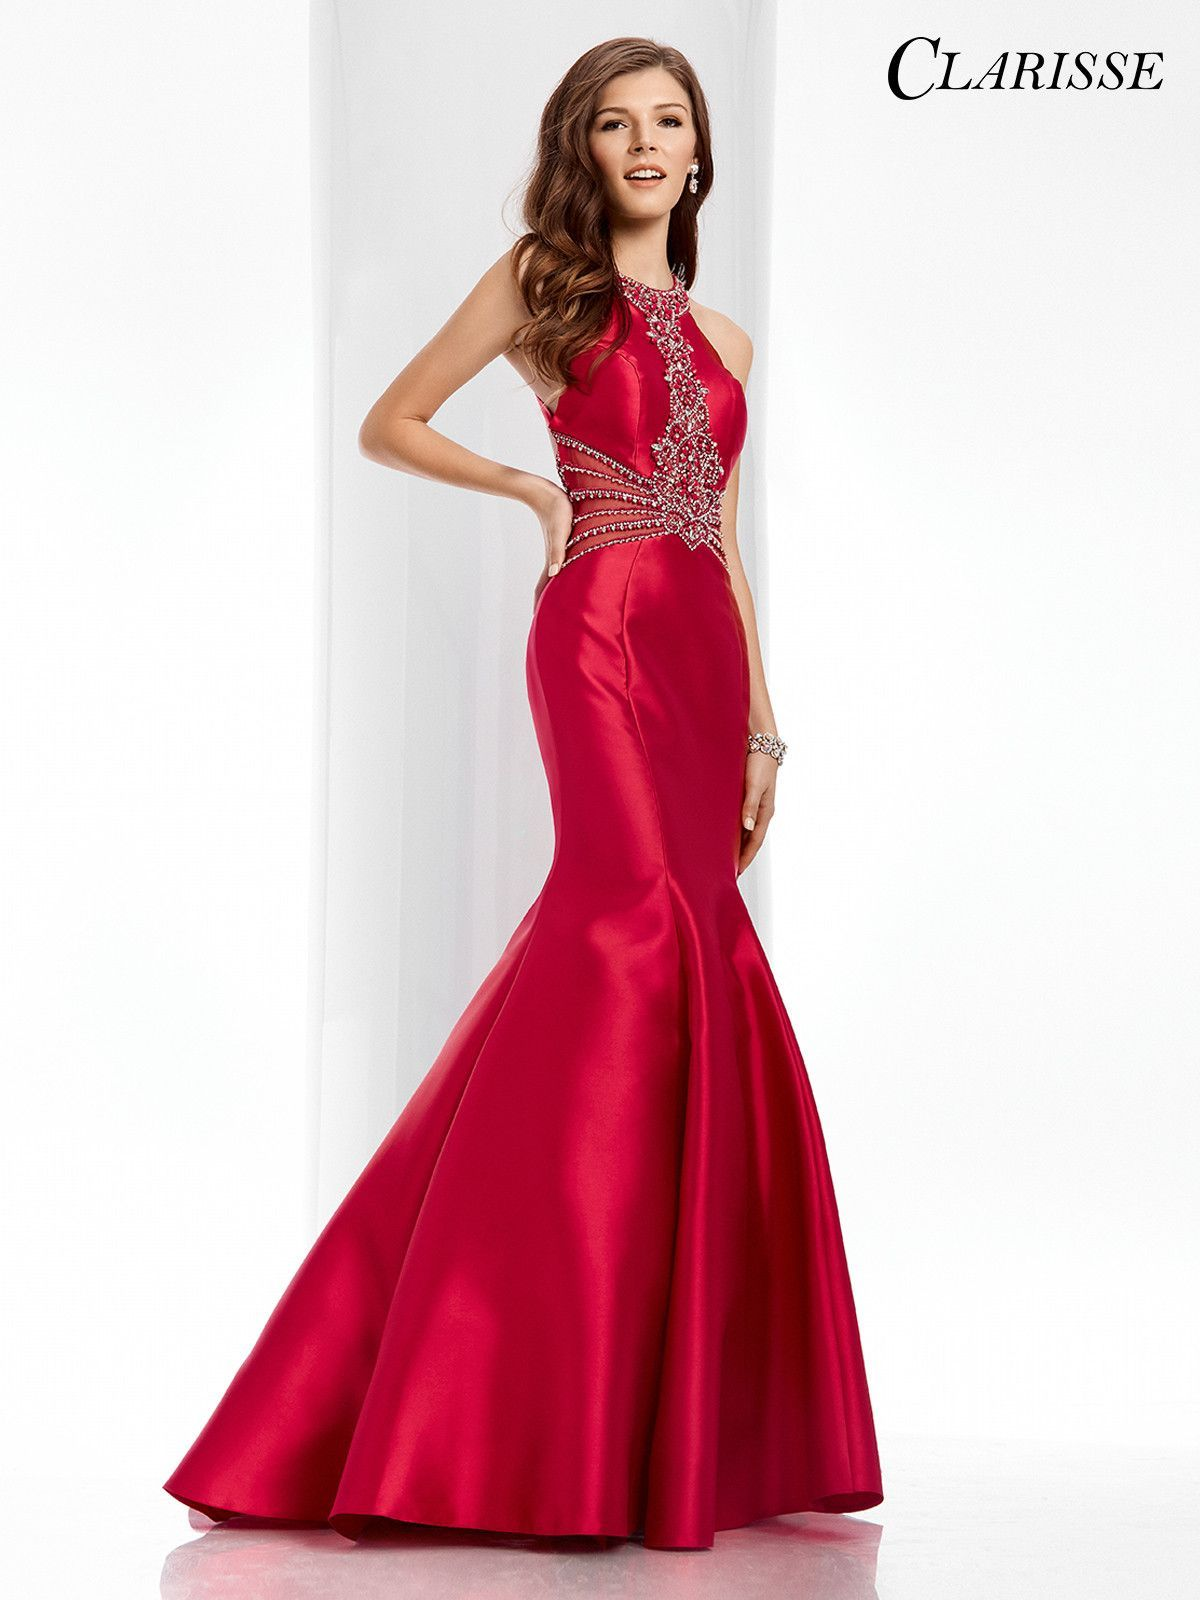 Clarisse prom cranberry open back prom dress products